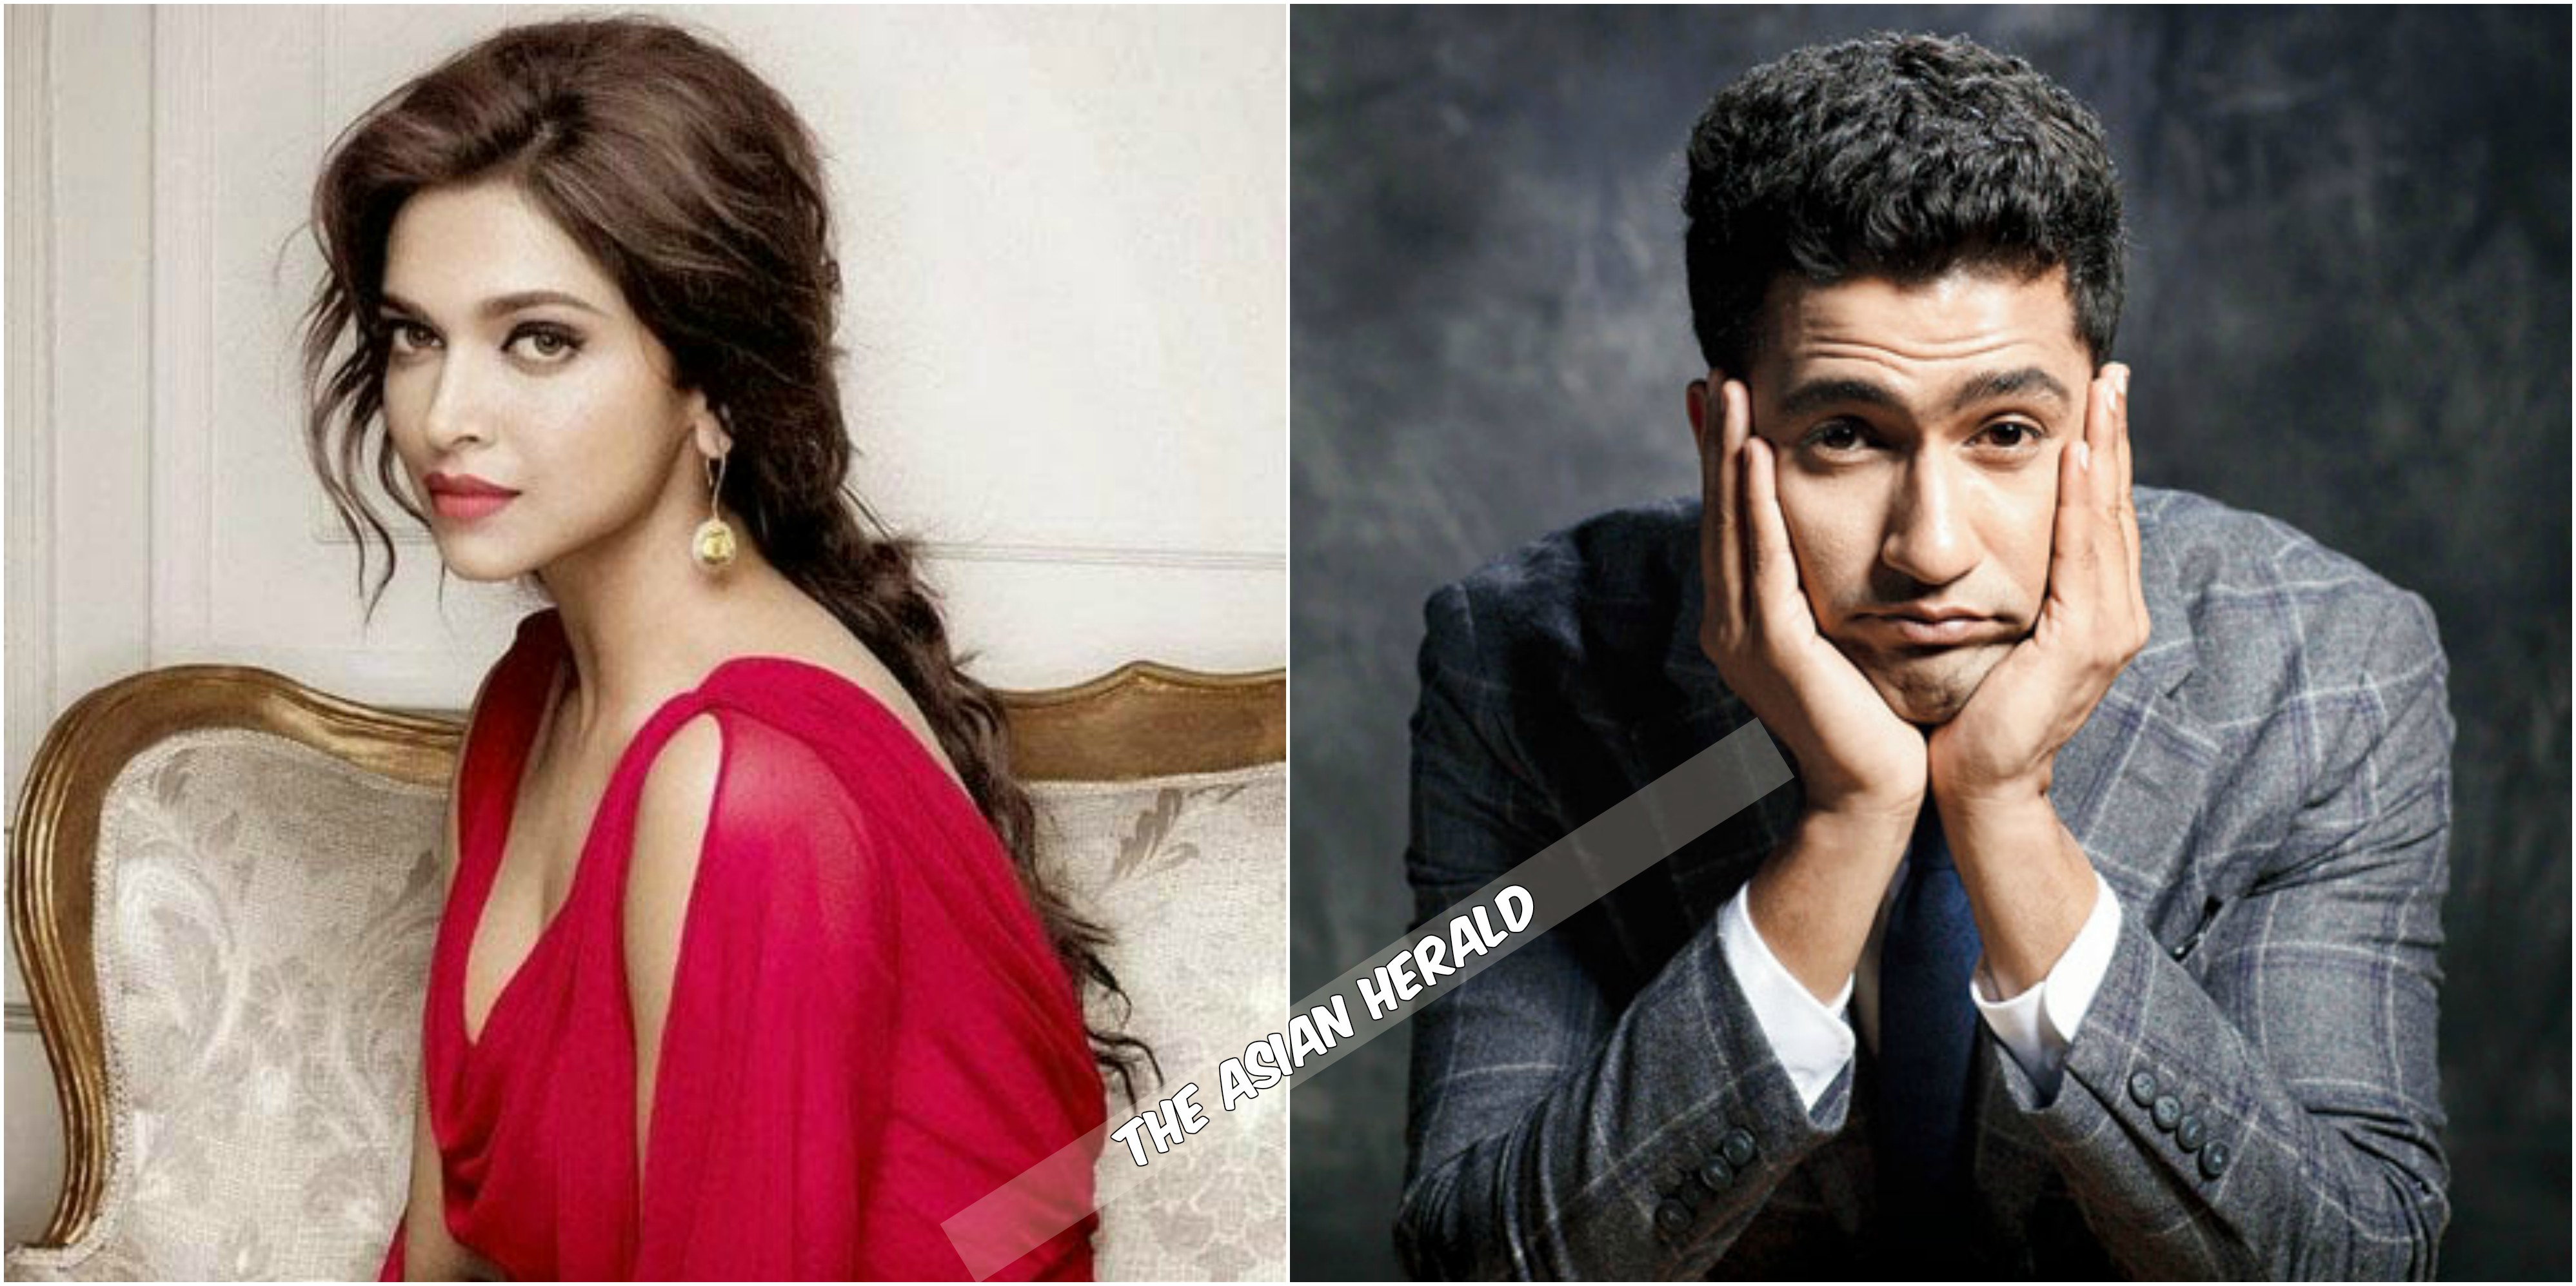 Deepika Padukone refused Vicky Kaushal for Rani Padmavati - The Asian Herald